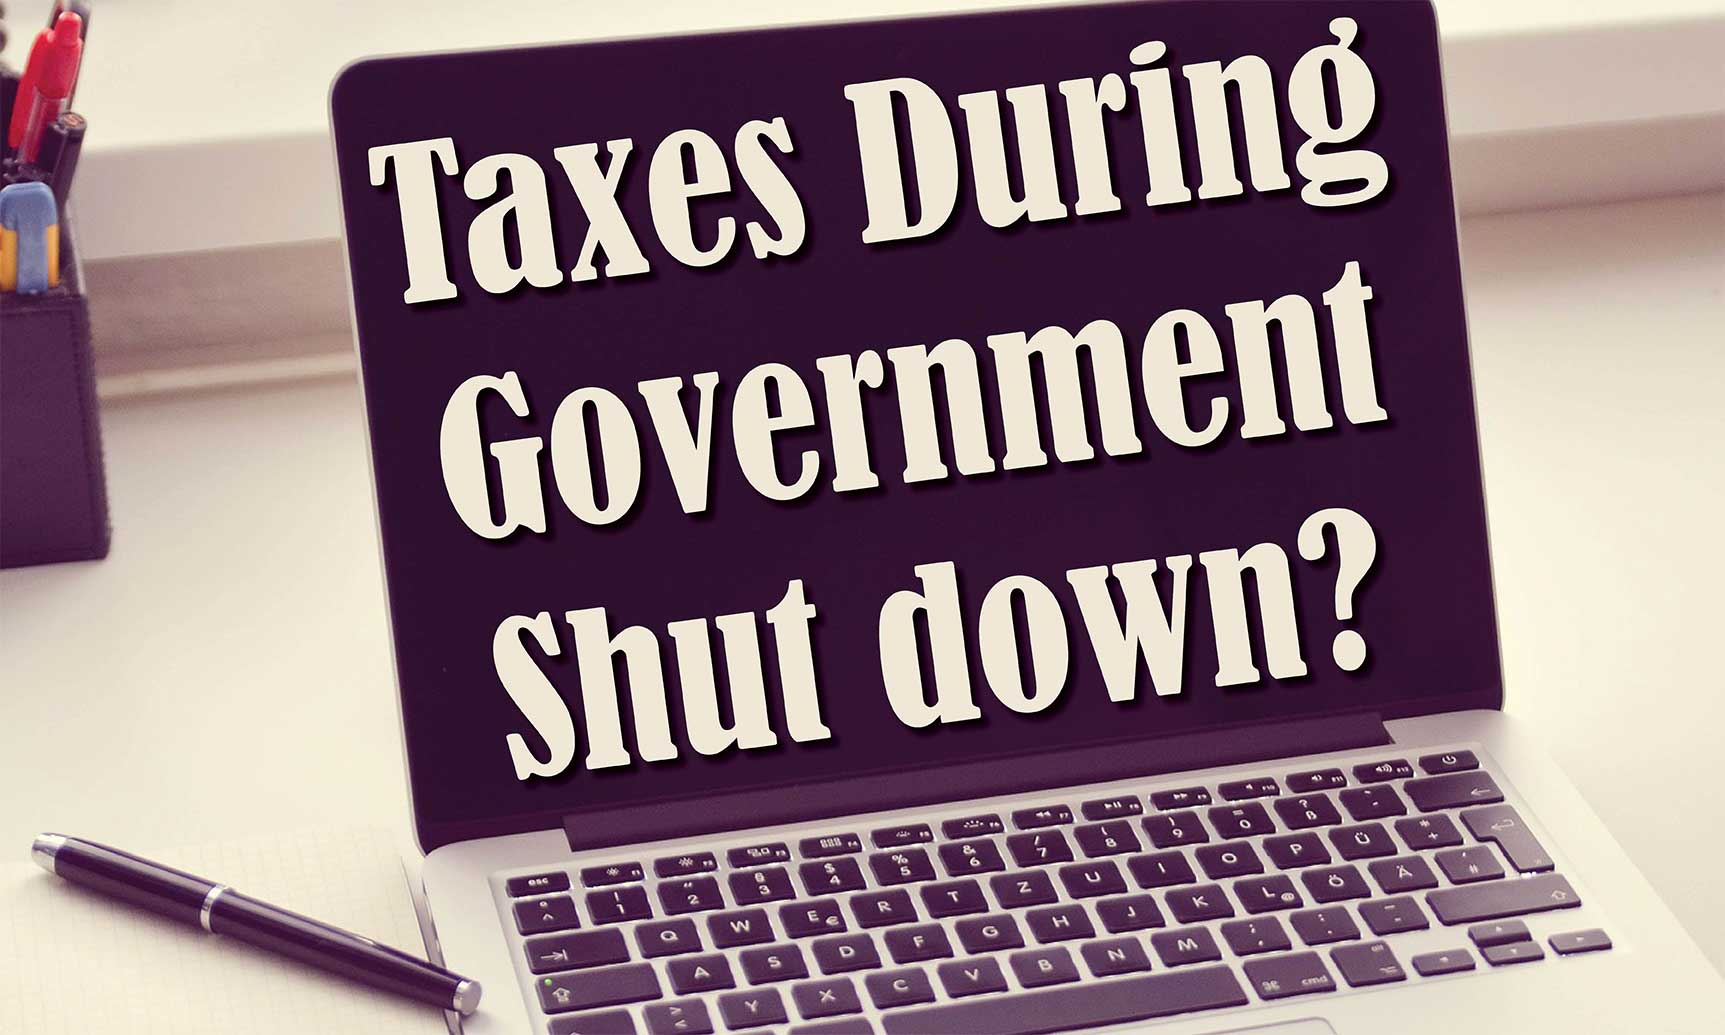 Taxes and Government Shut Down